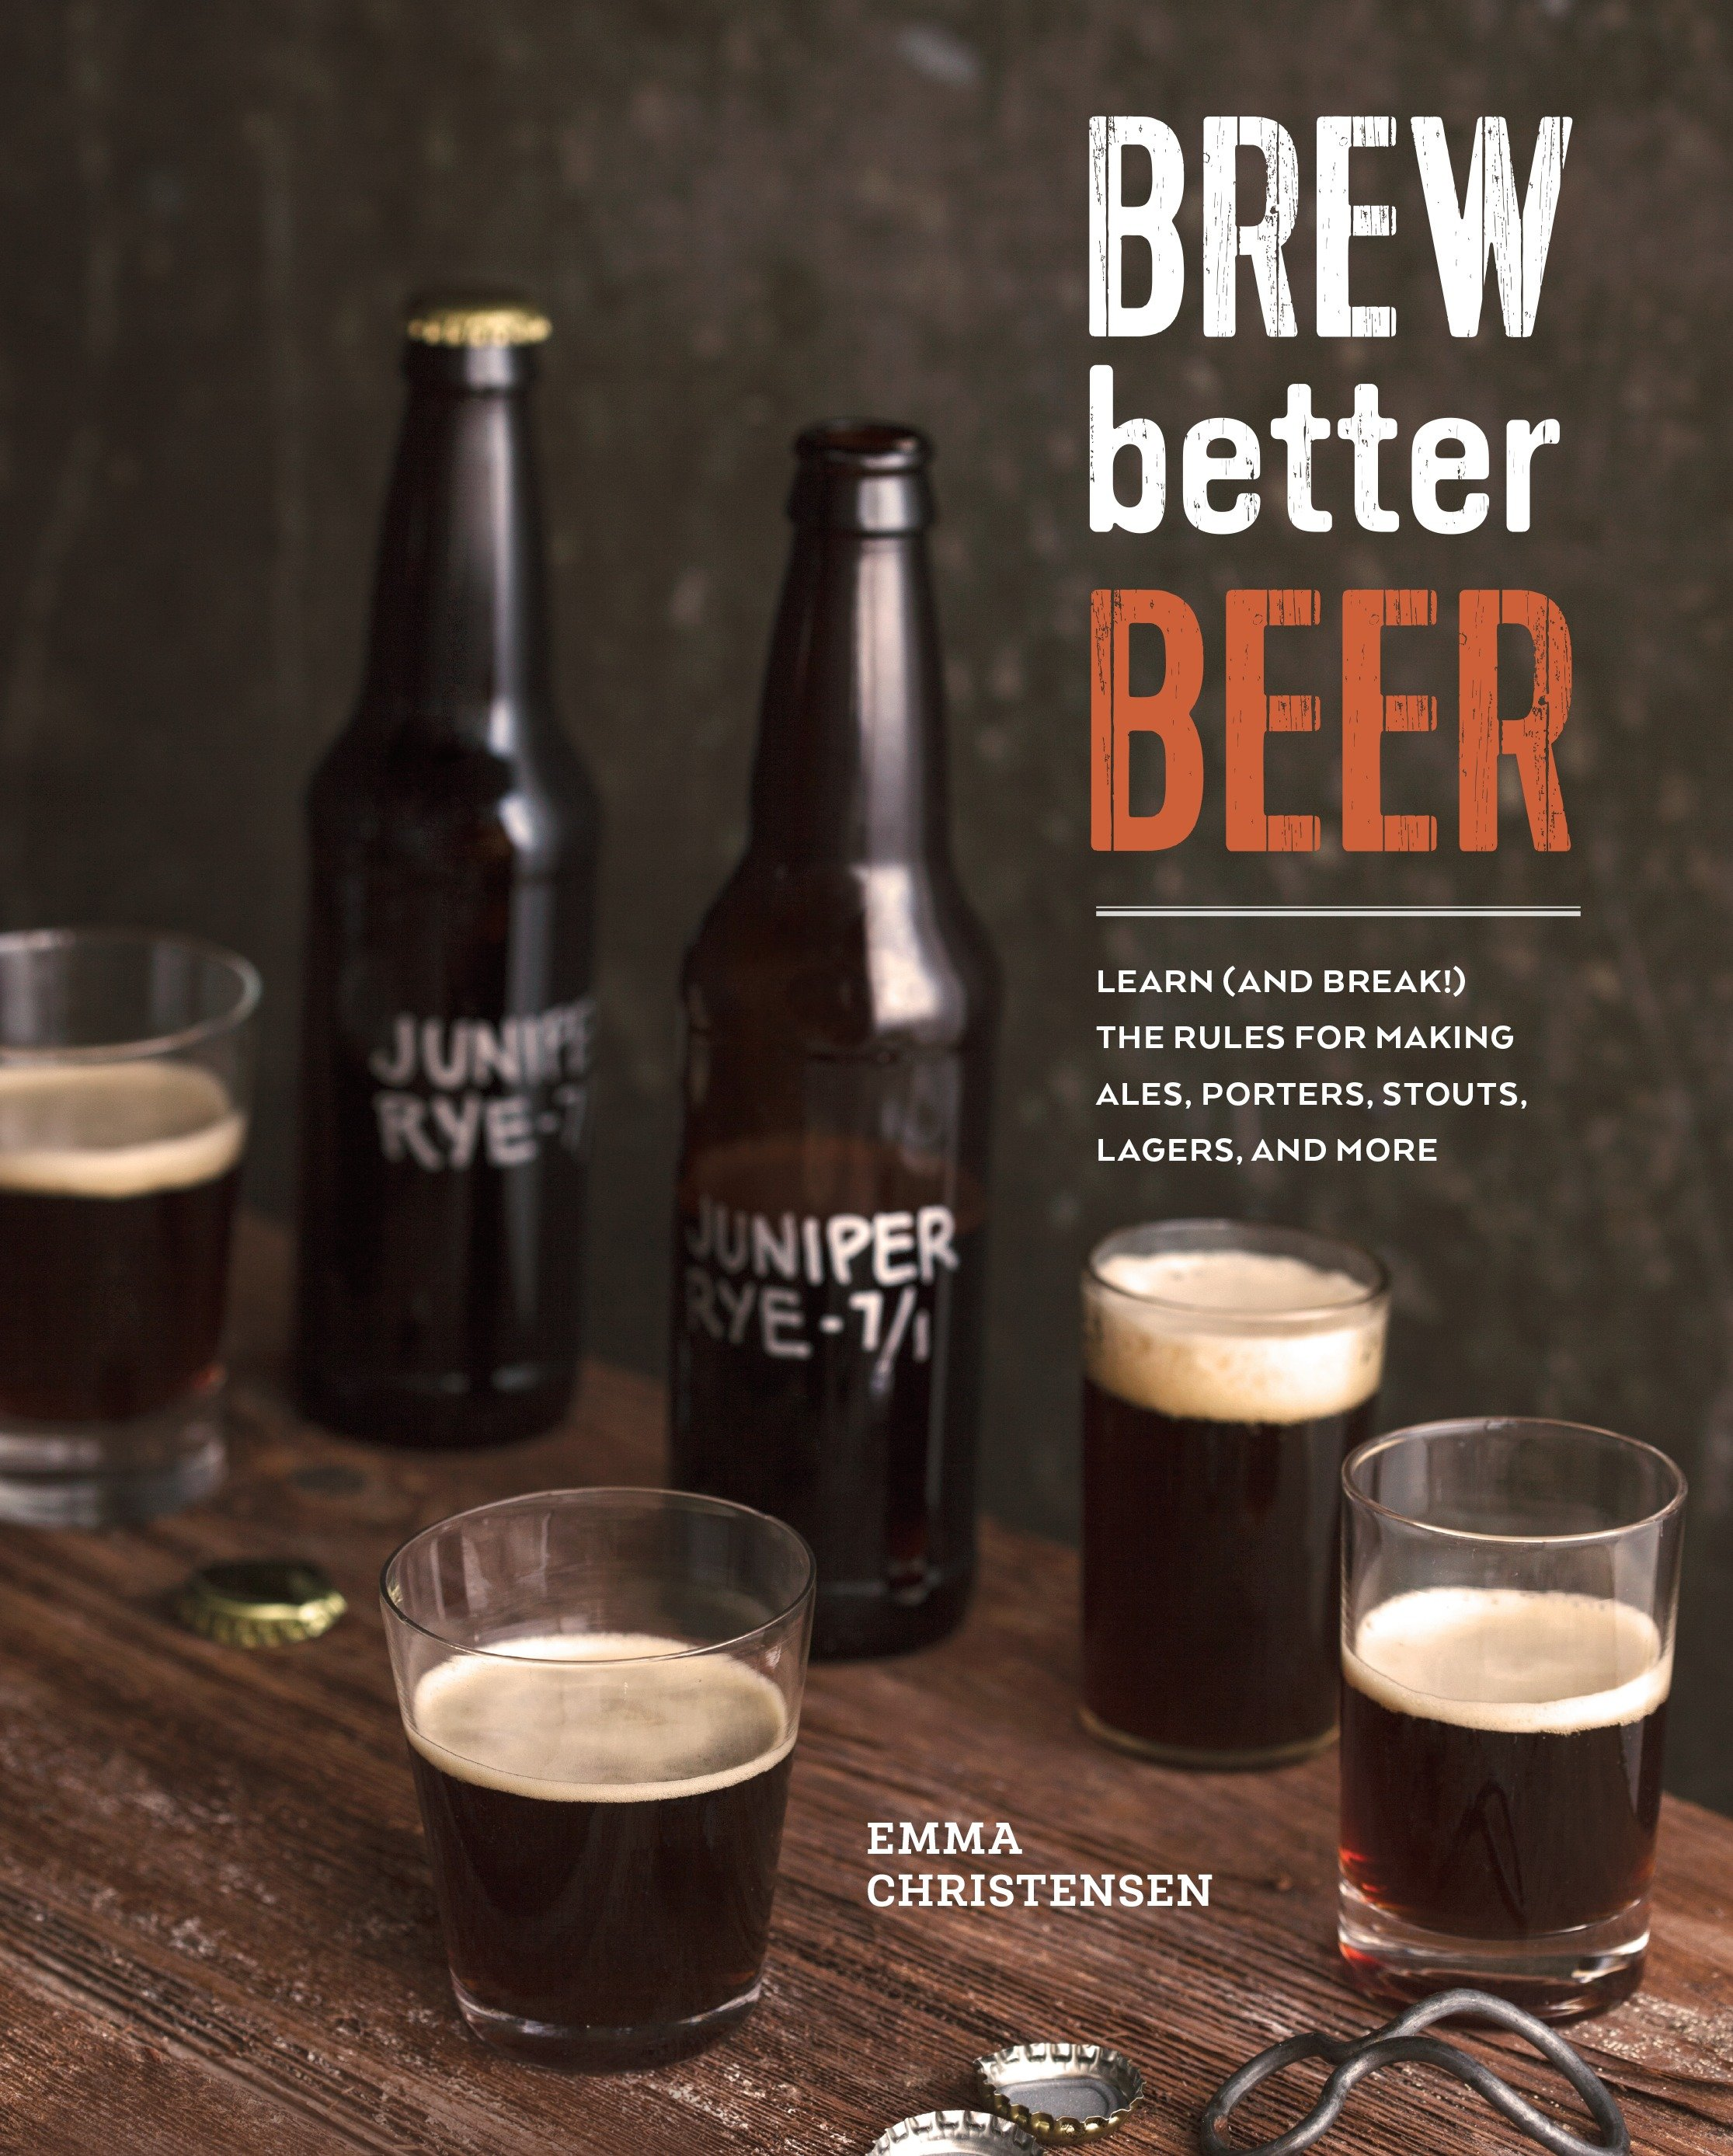 Brew Better Beer Learn (and Break) the Rules for Making IPAs, Sours, Pilsners, Stouts, and More